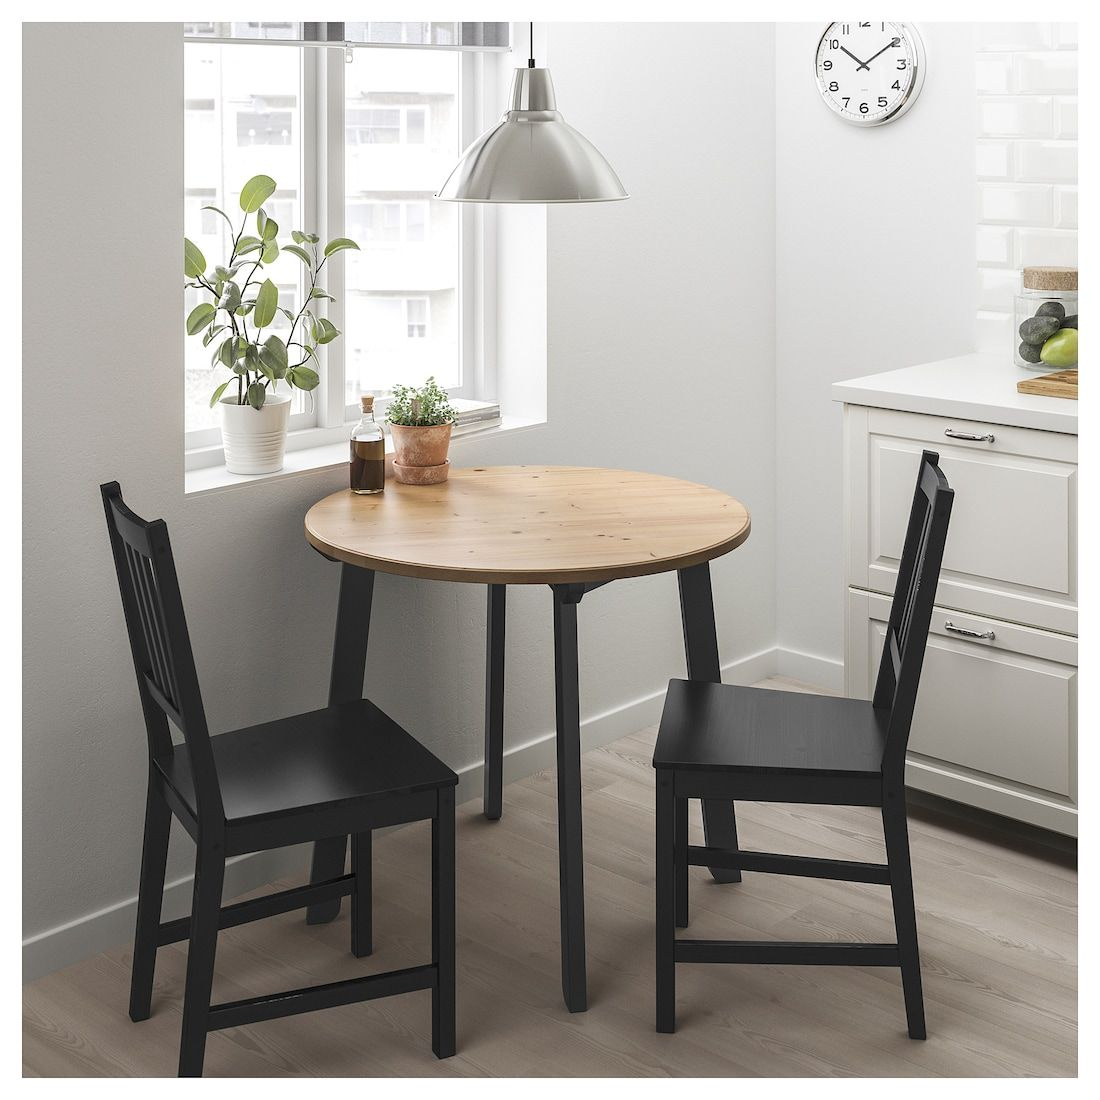 Gamlared Stefan Table And 2 Chairs Light Antique Stain Brown Black 33 1 2 Dining Room Small Small Kitchen